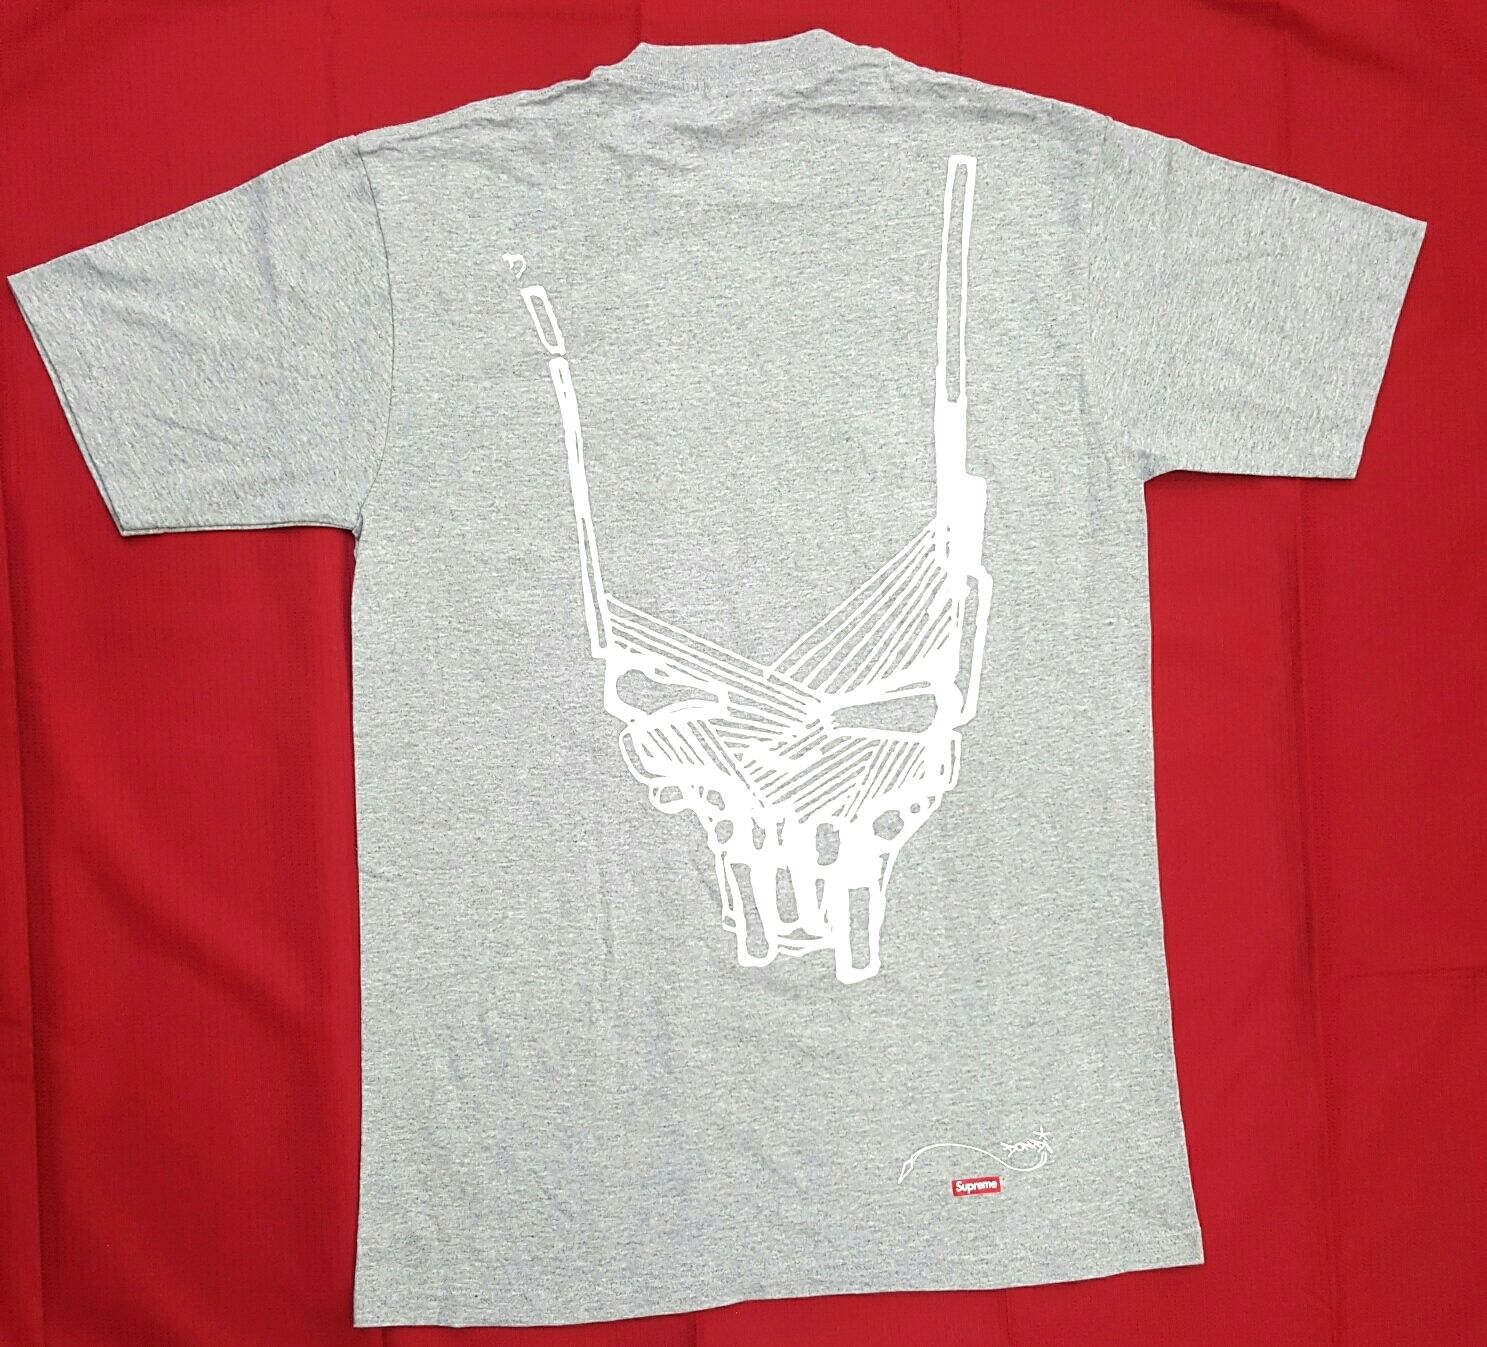 SUPREME X DONDI SKULL HEAD TEE IN grau LIMITED EDITION 100% authentic VERY RARE